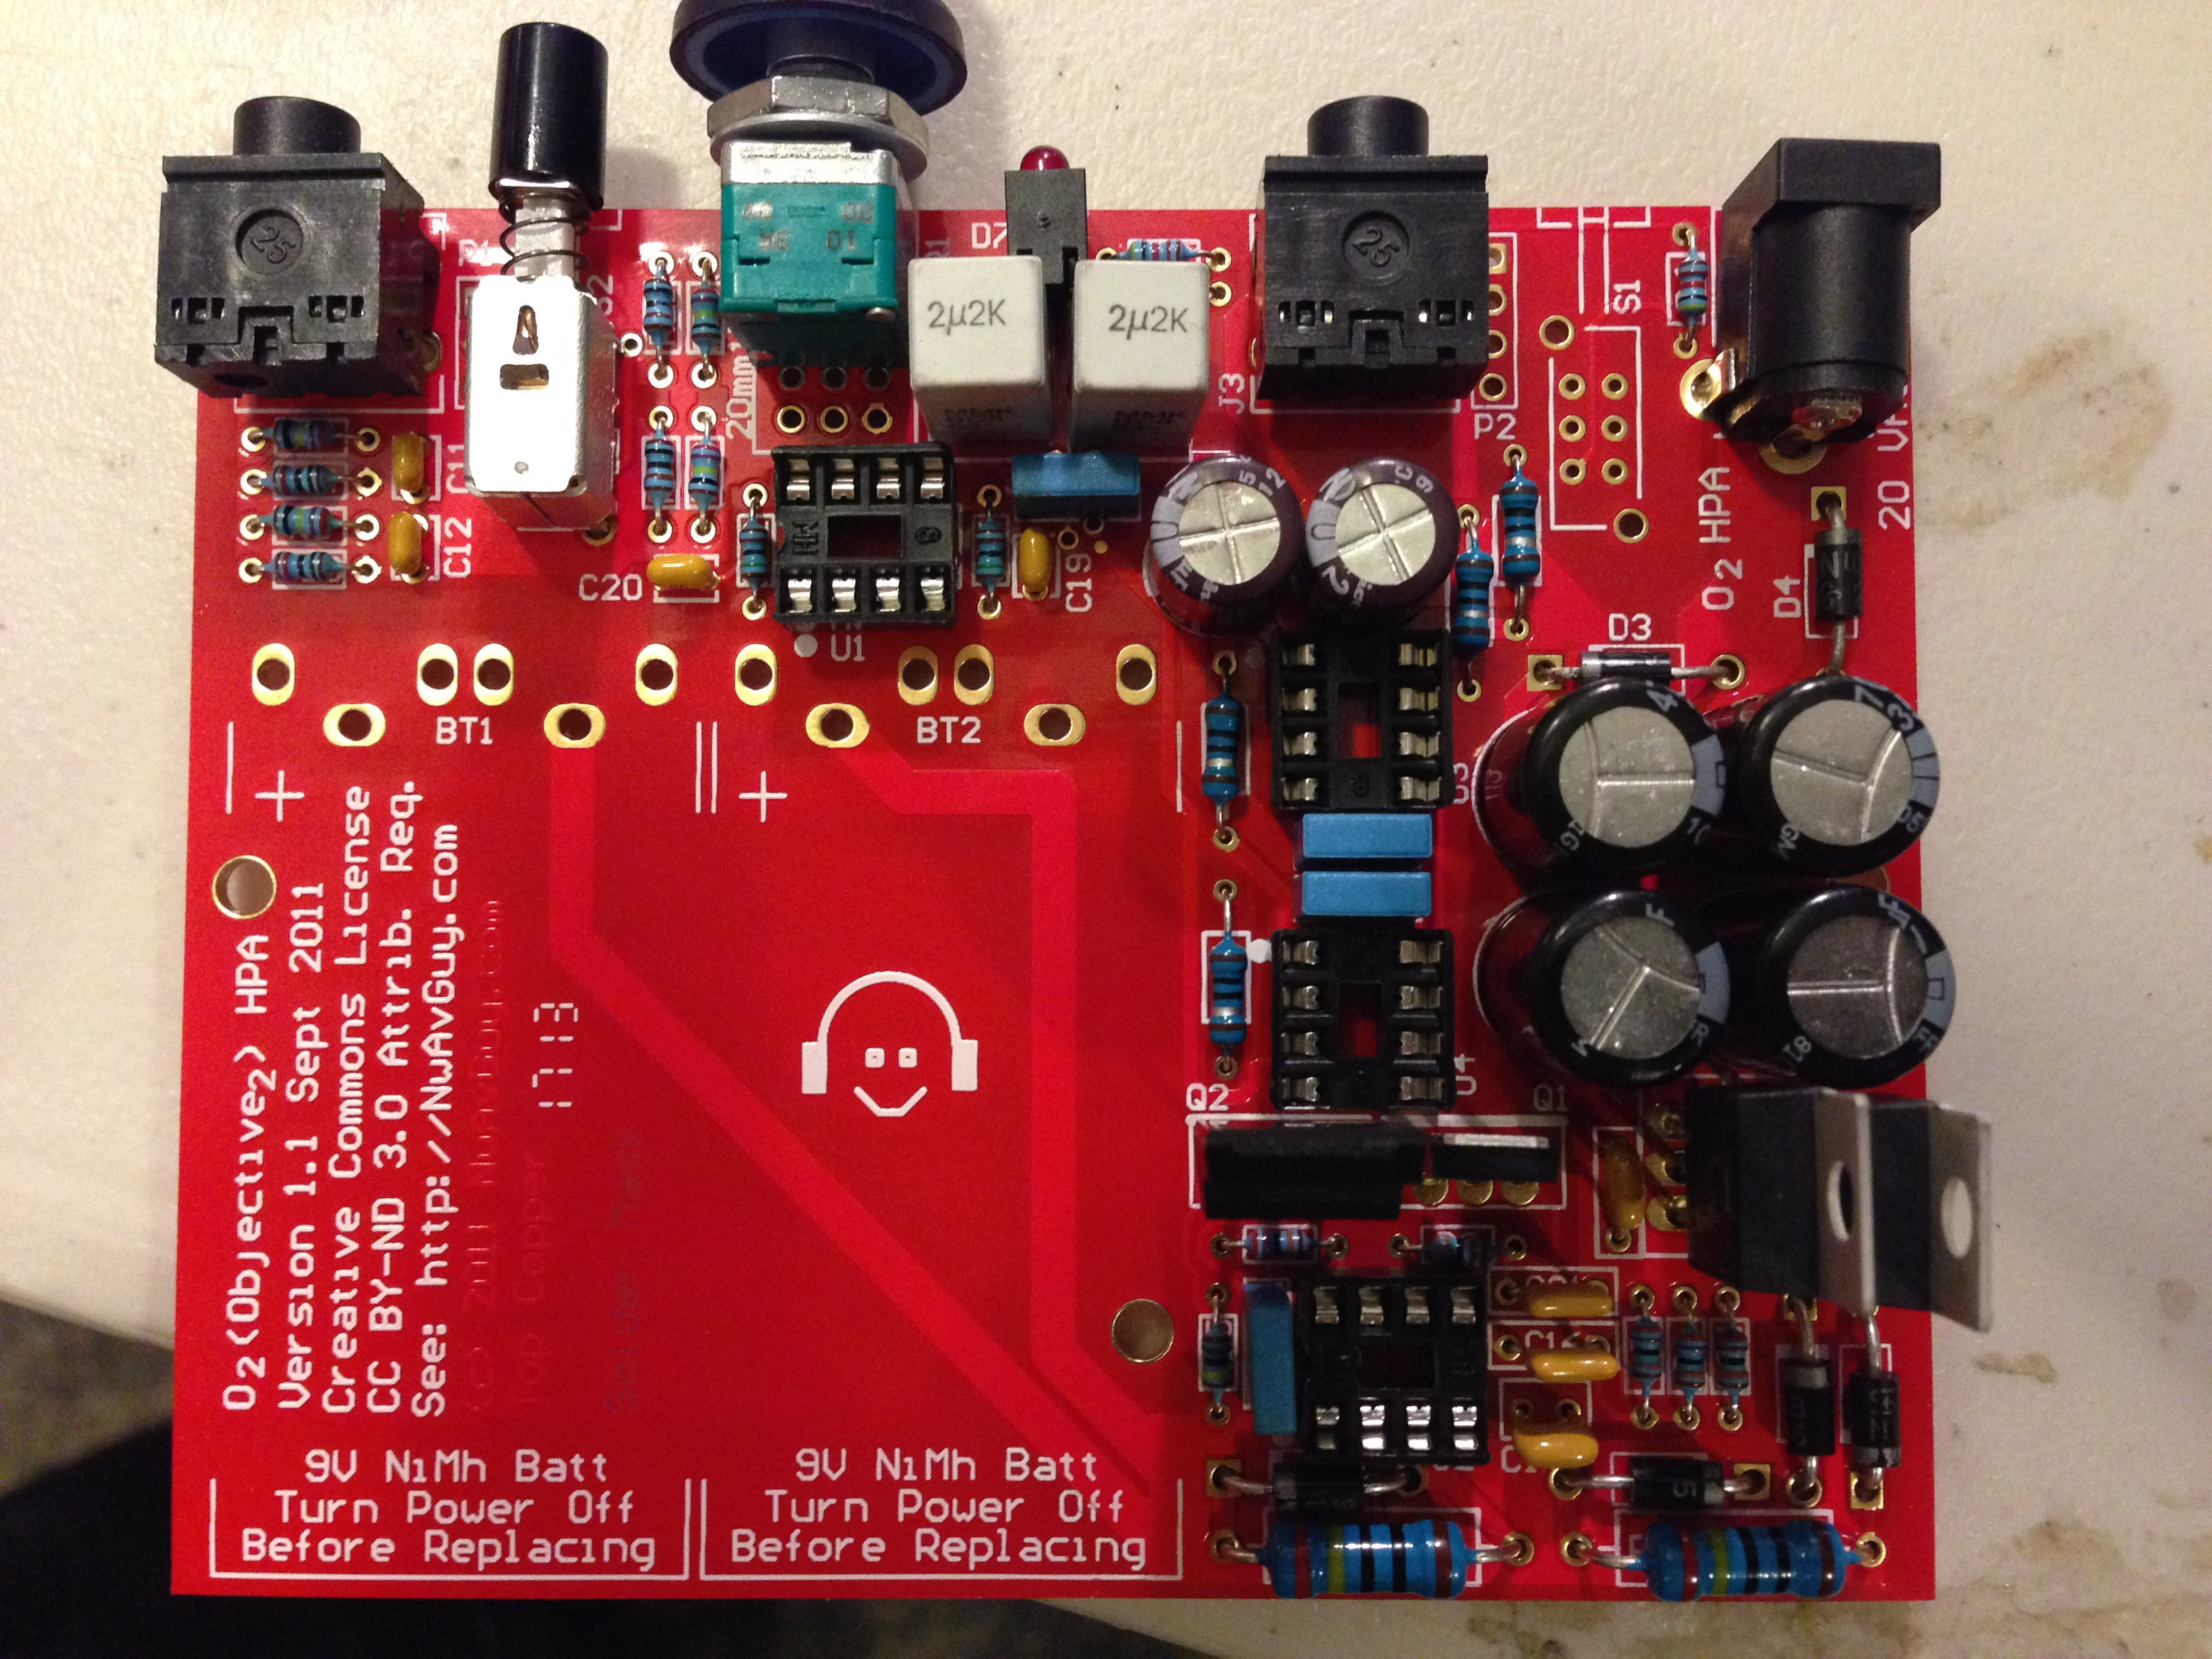 O2 Headphone Amplifier - Mostly Complete